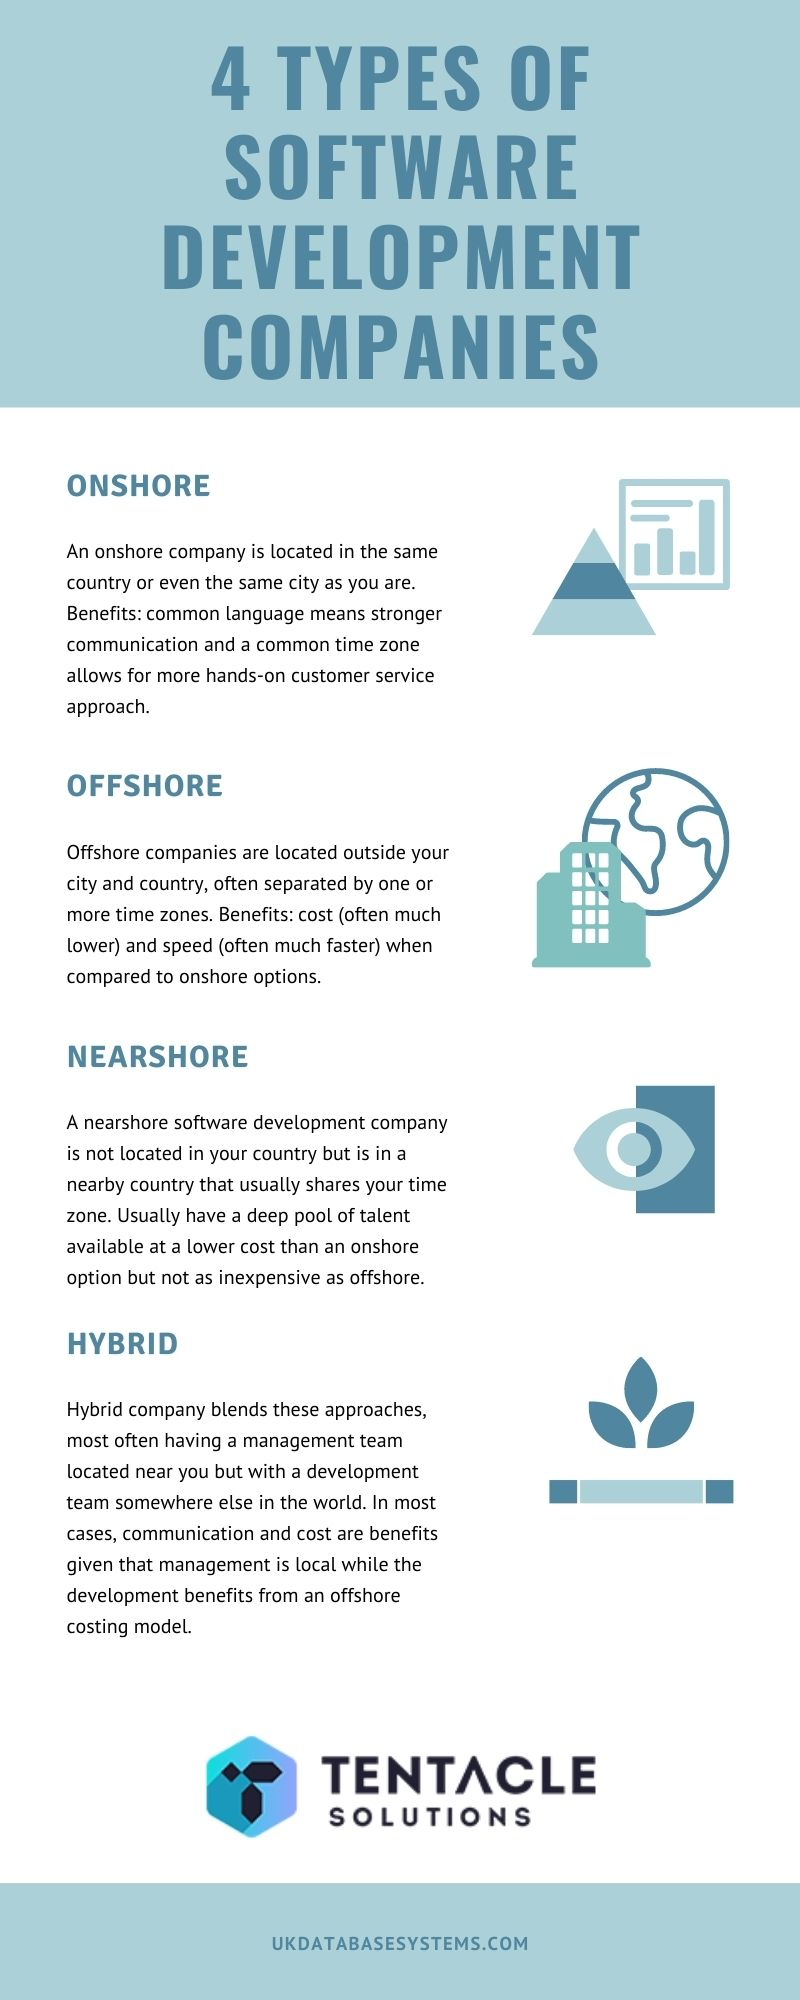 types of custom software companies infographic by tentacle solutions